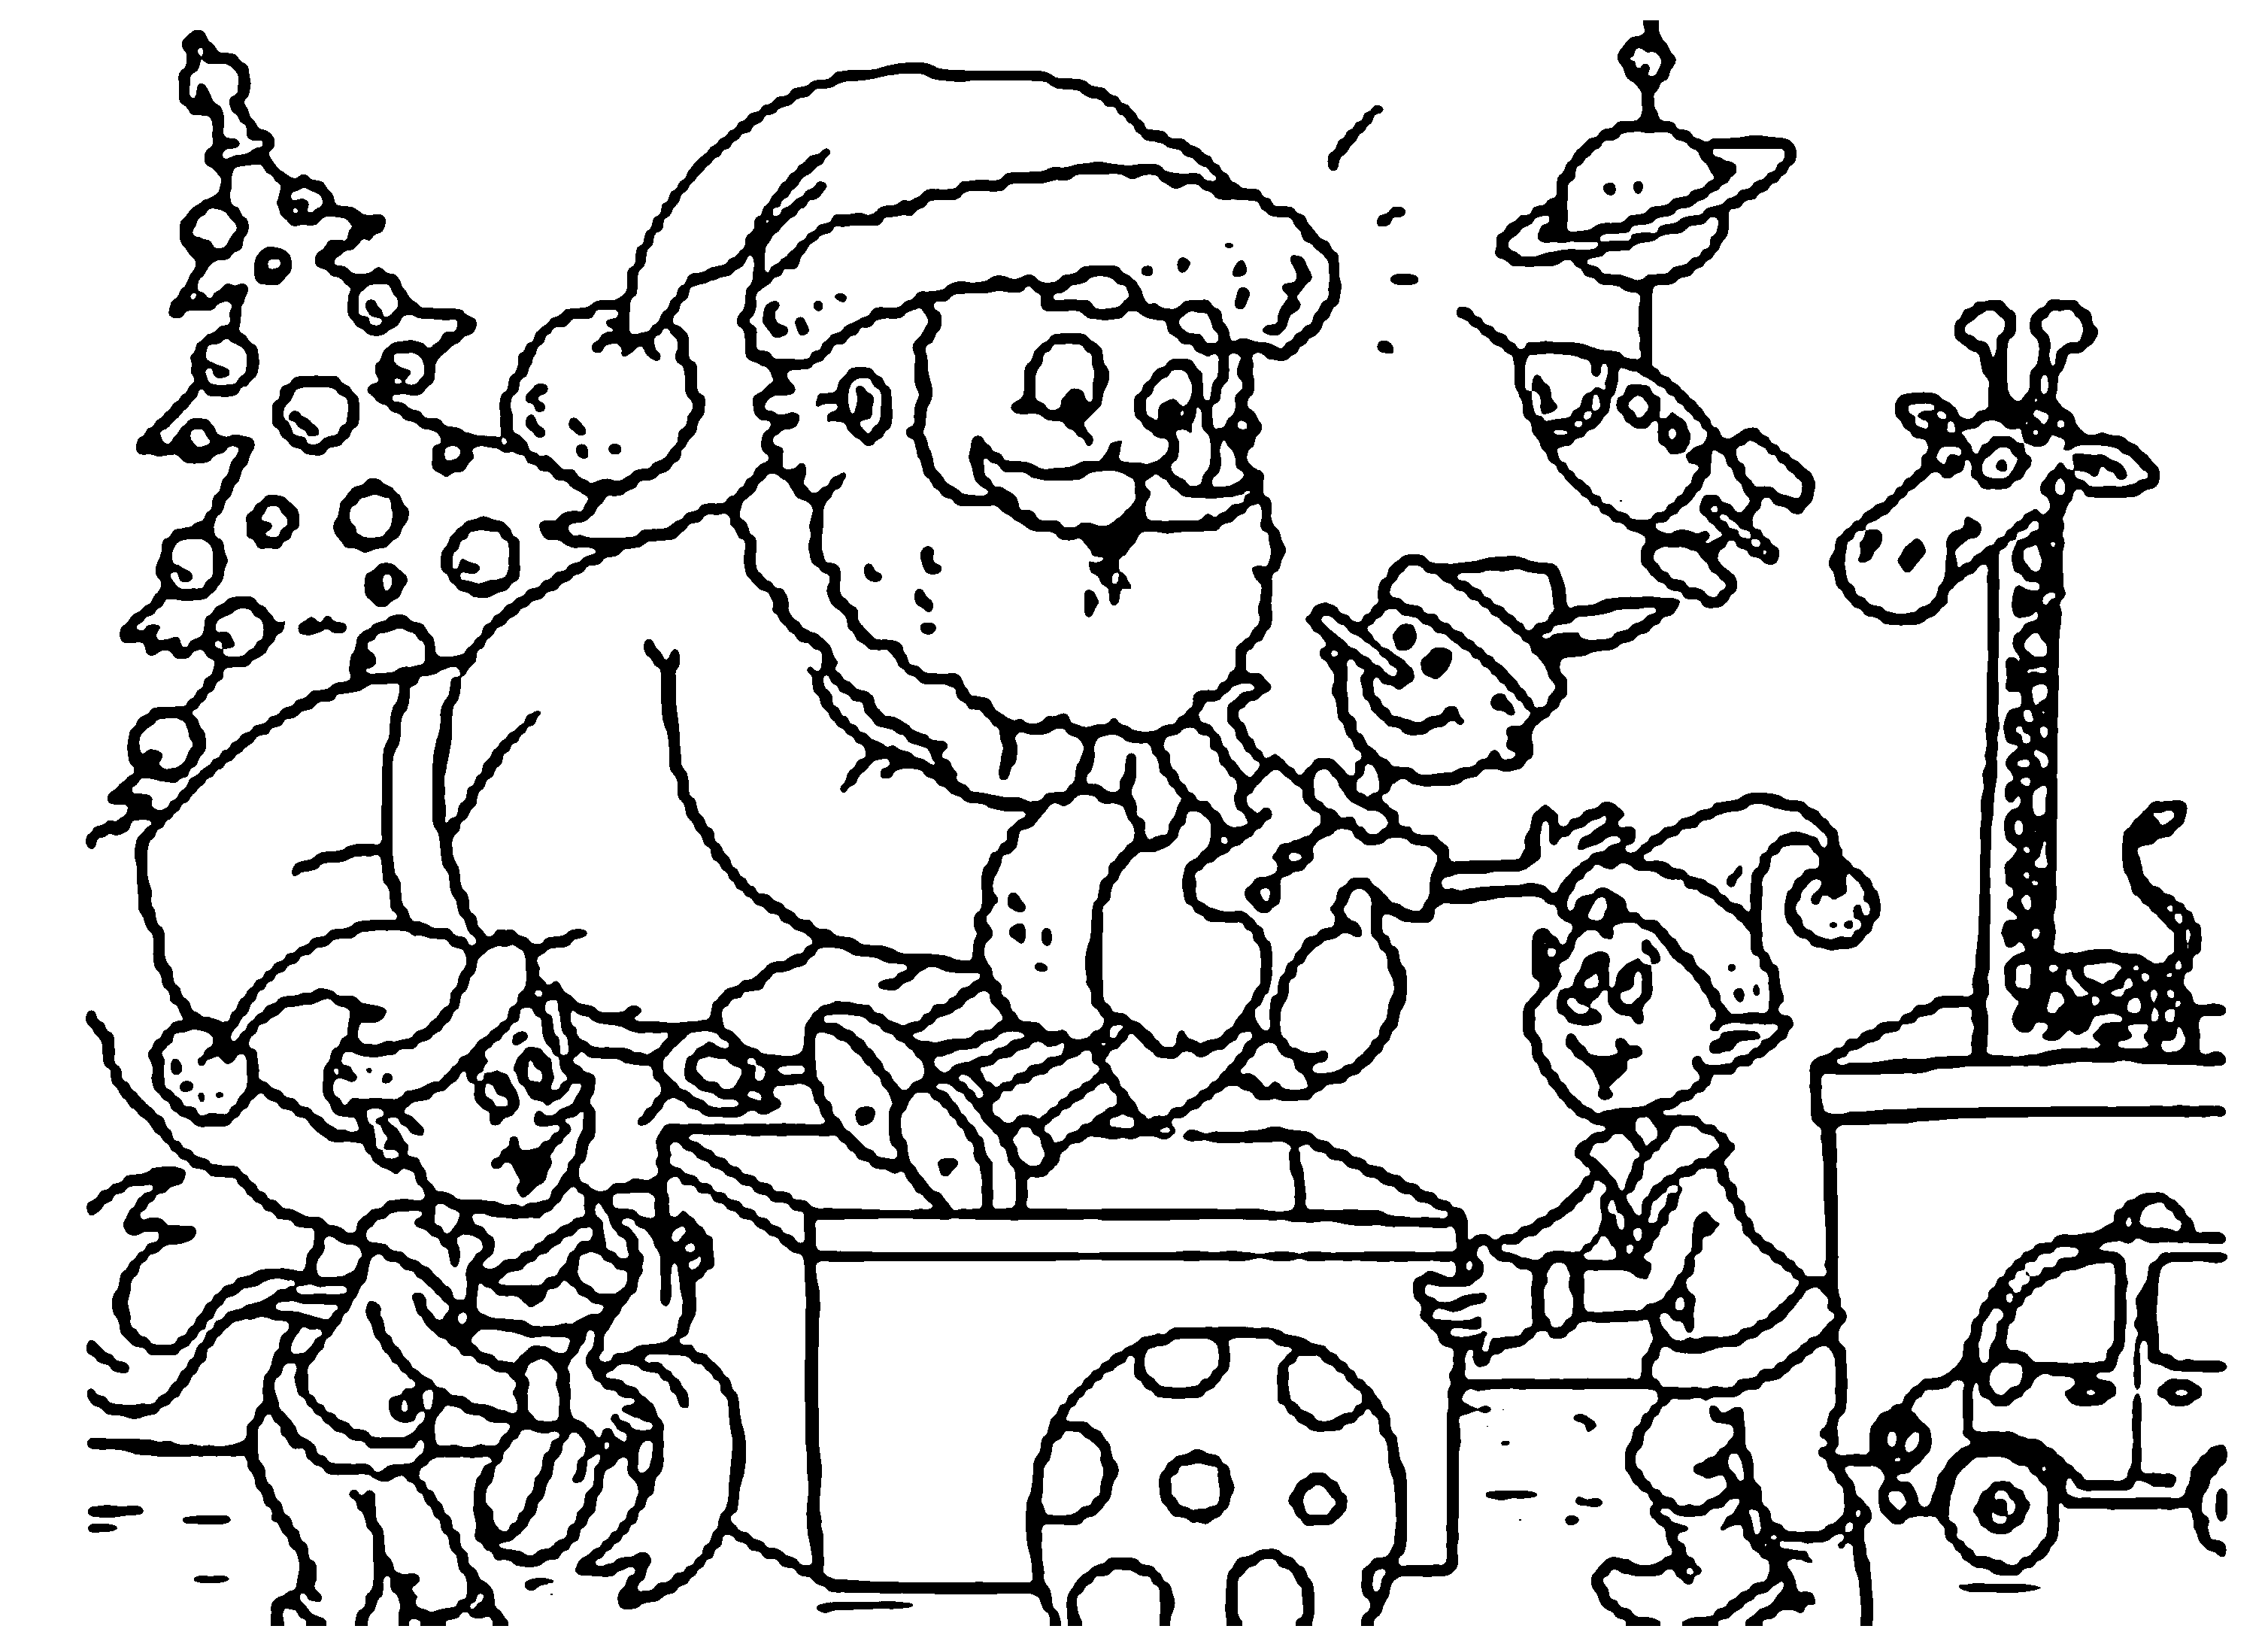 3016x2182 elves coloring pages - Coloring Pictures Of Santa Claus